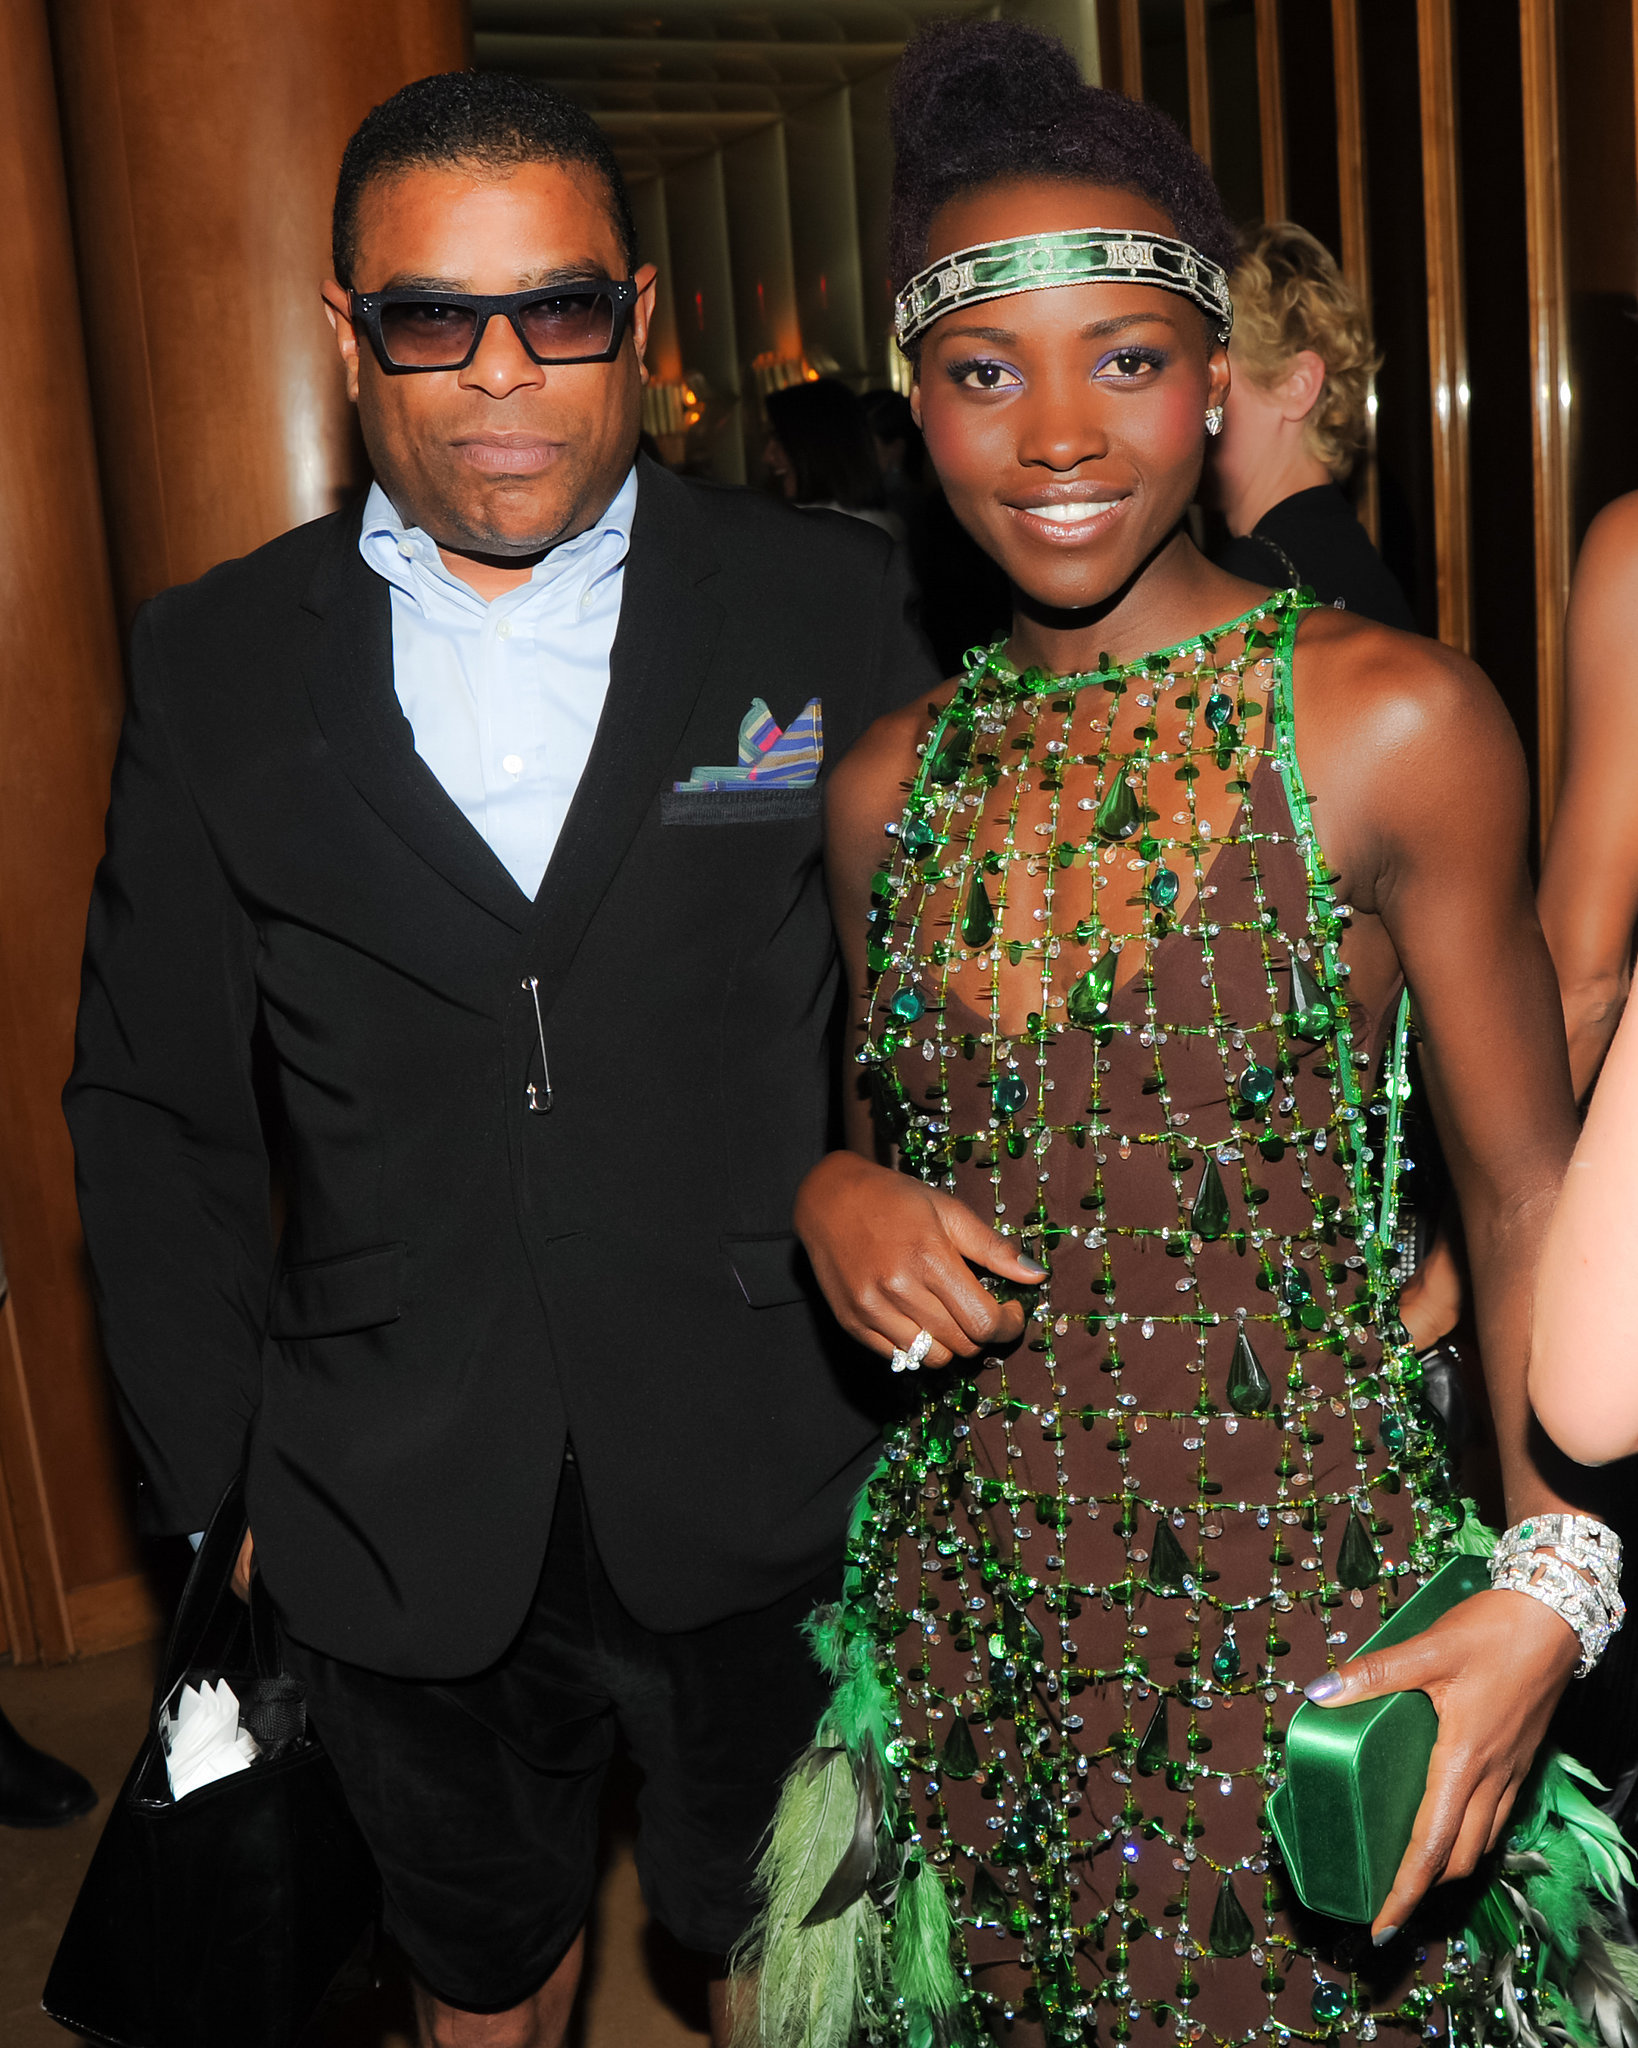 Stars Let Loose at Met Gala Afterparties